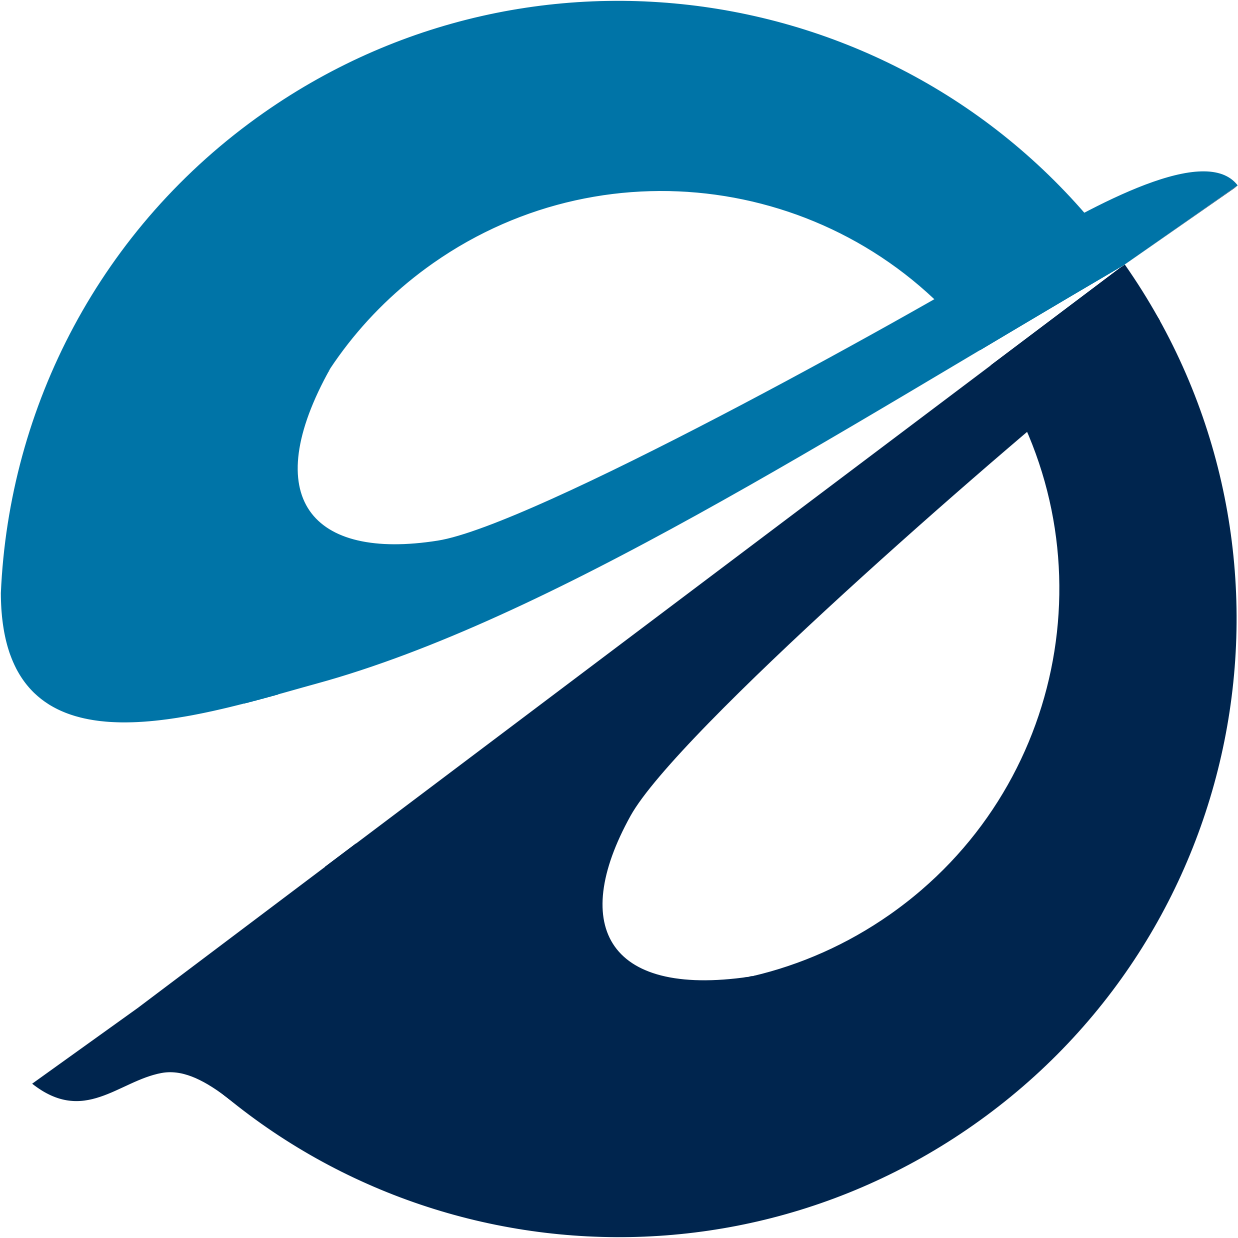 logo_only-2